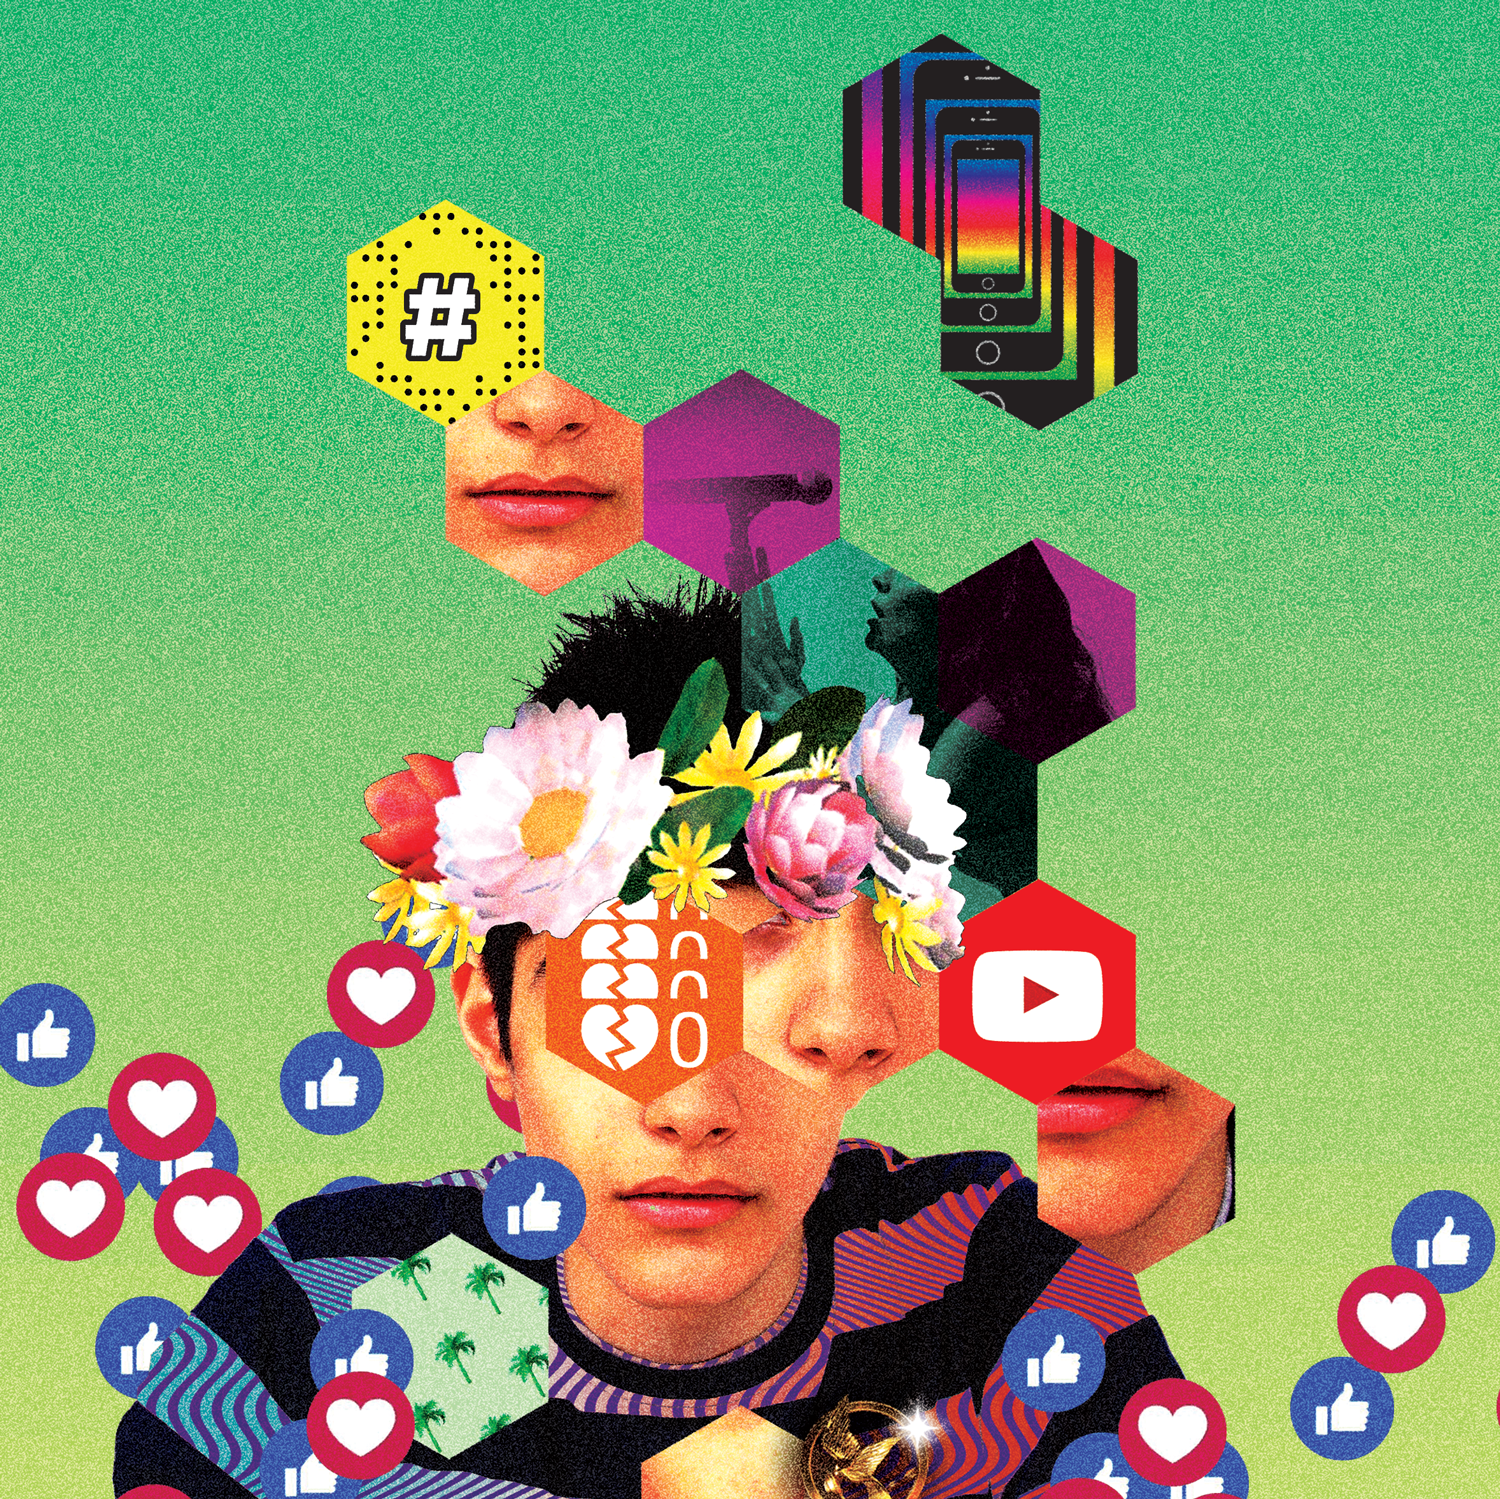 WIRED-Sept2017-Illo-sq.png